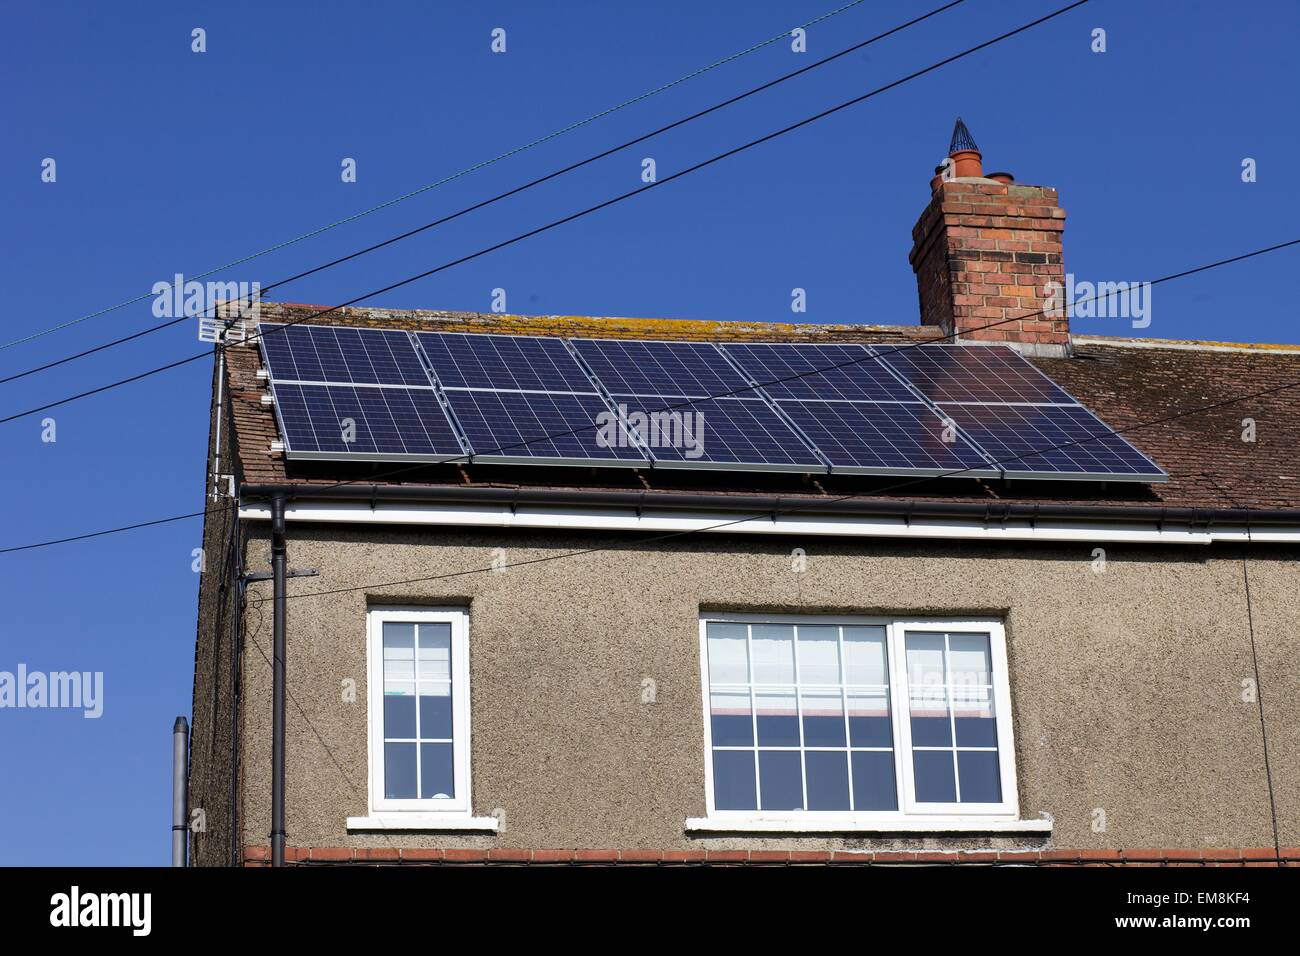 solar panels on roof in Catterick Village, North Yorkshire - Stock Image